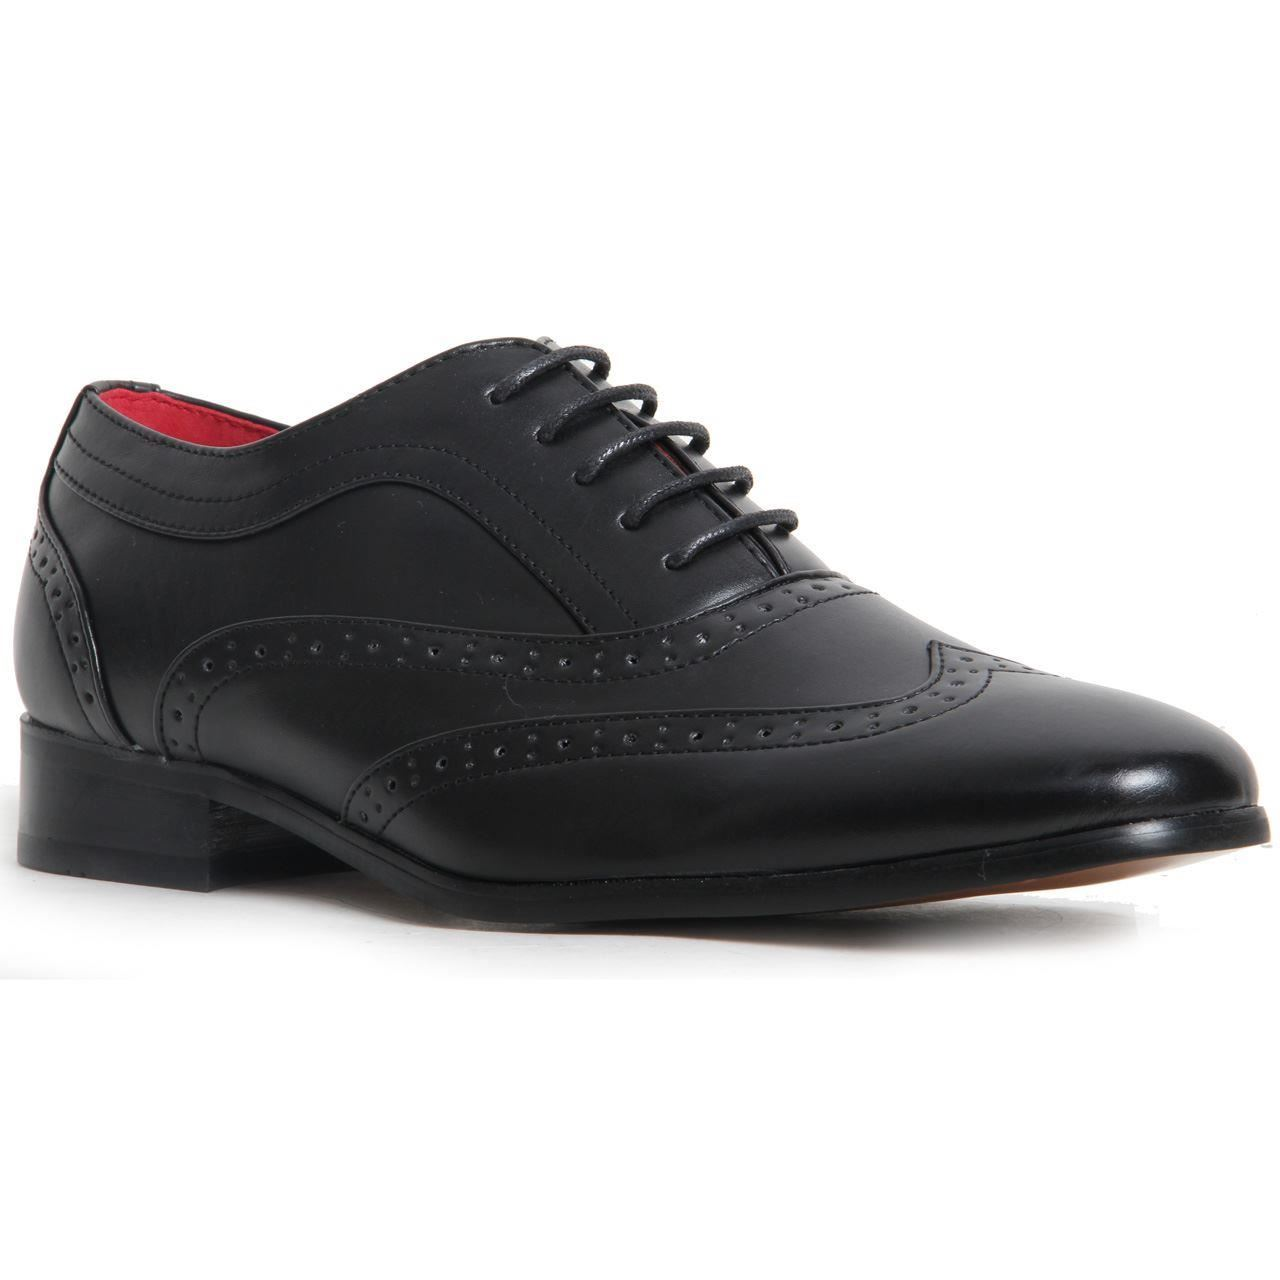 Black And White Two Tone Dress Shoes